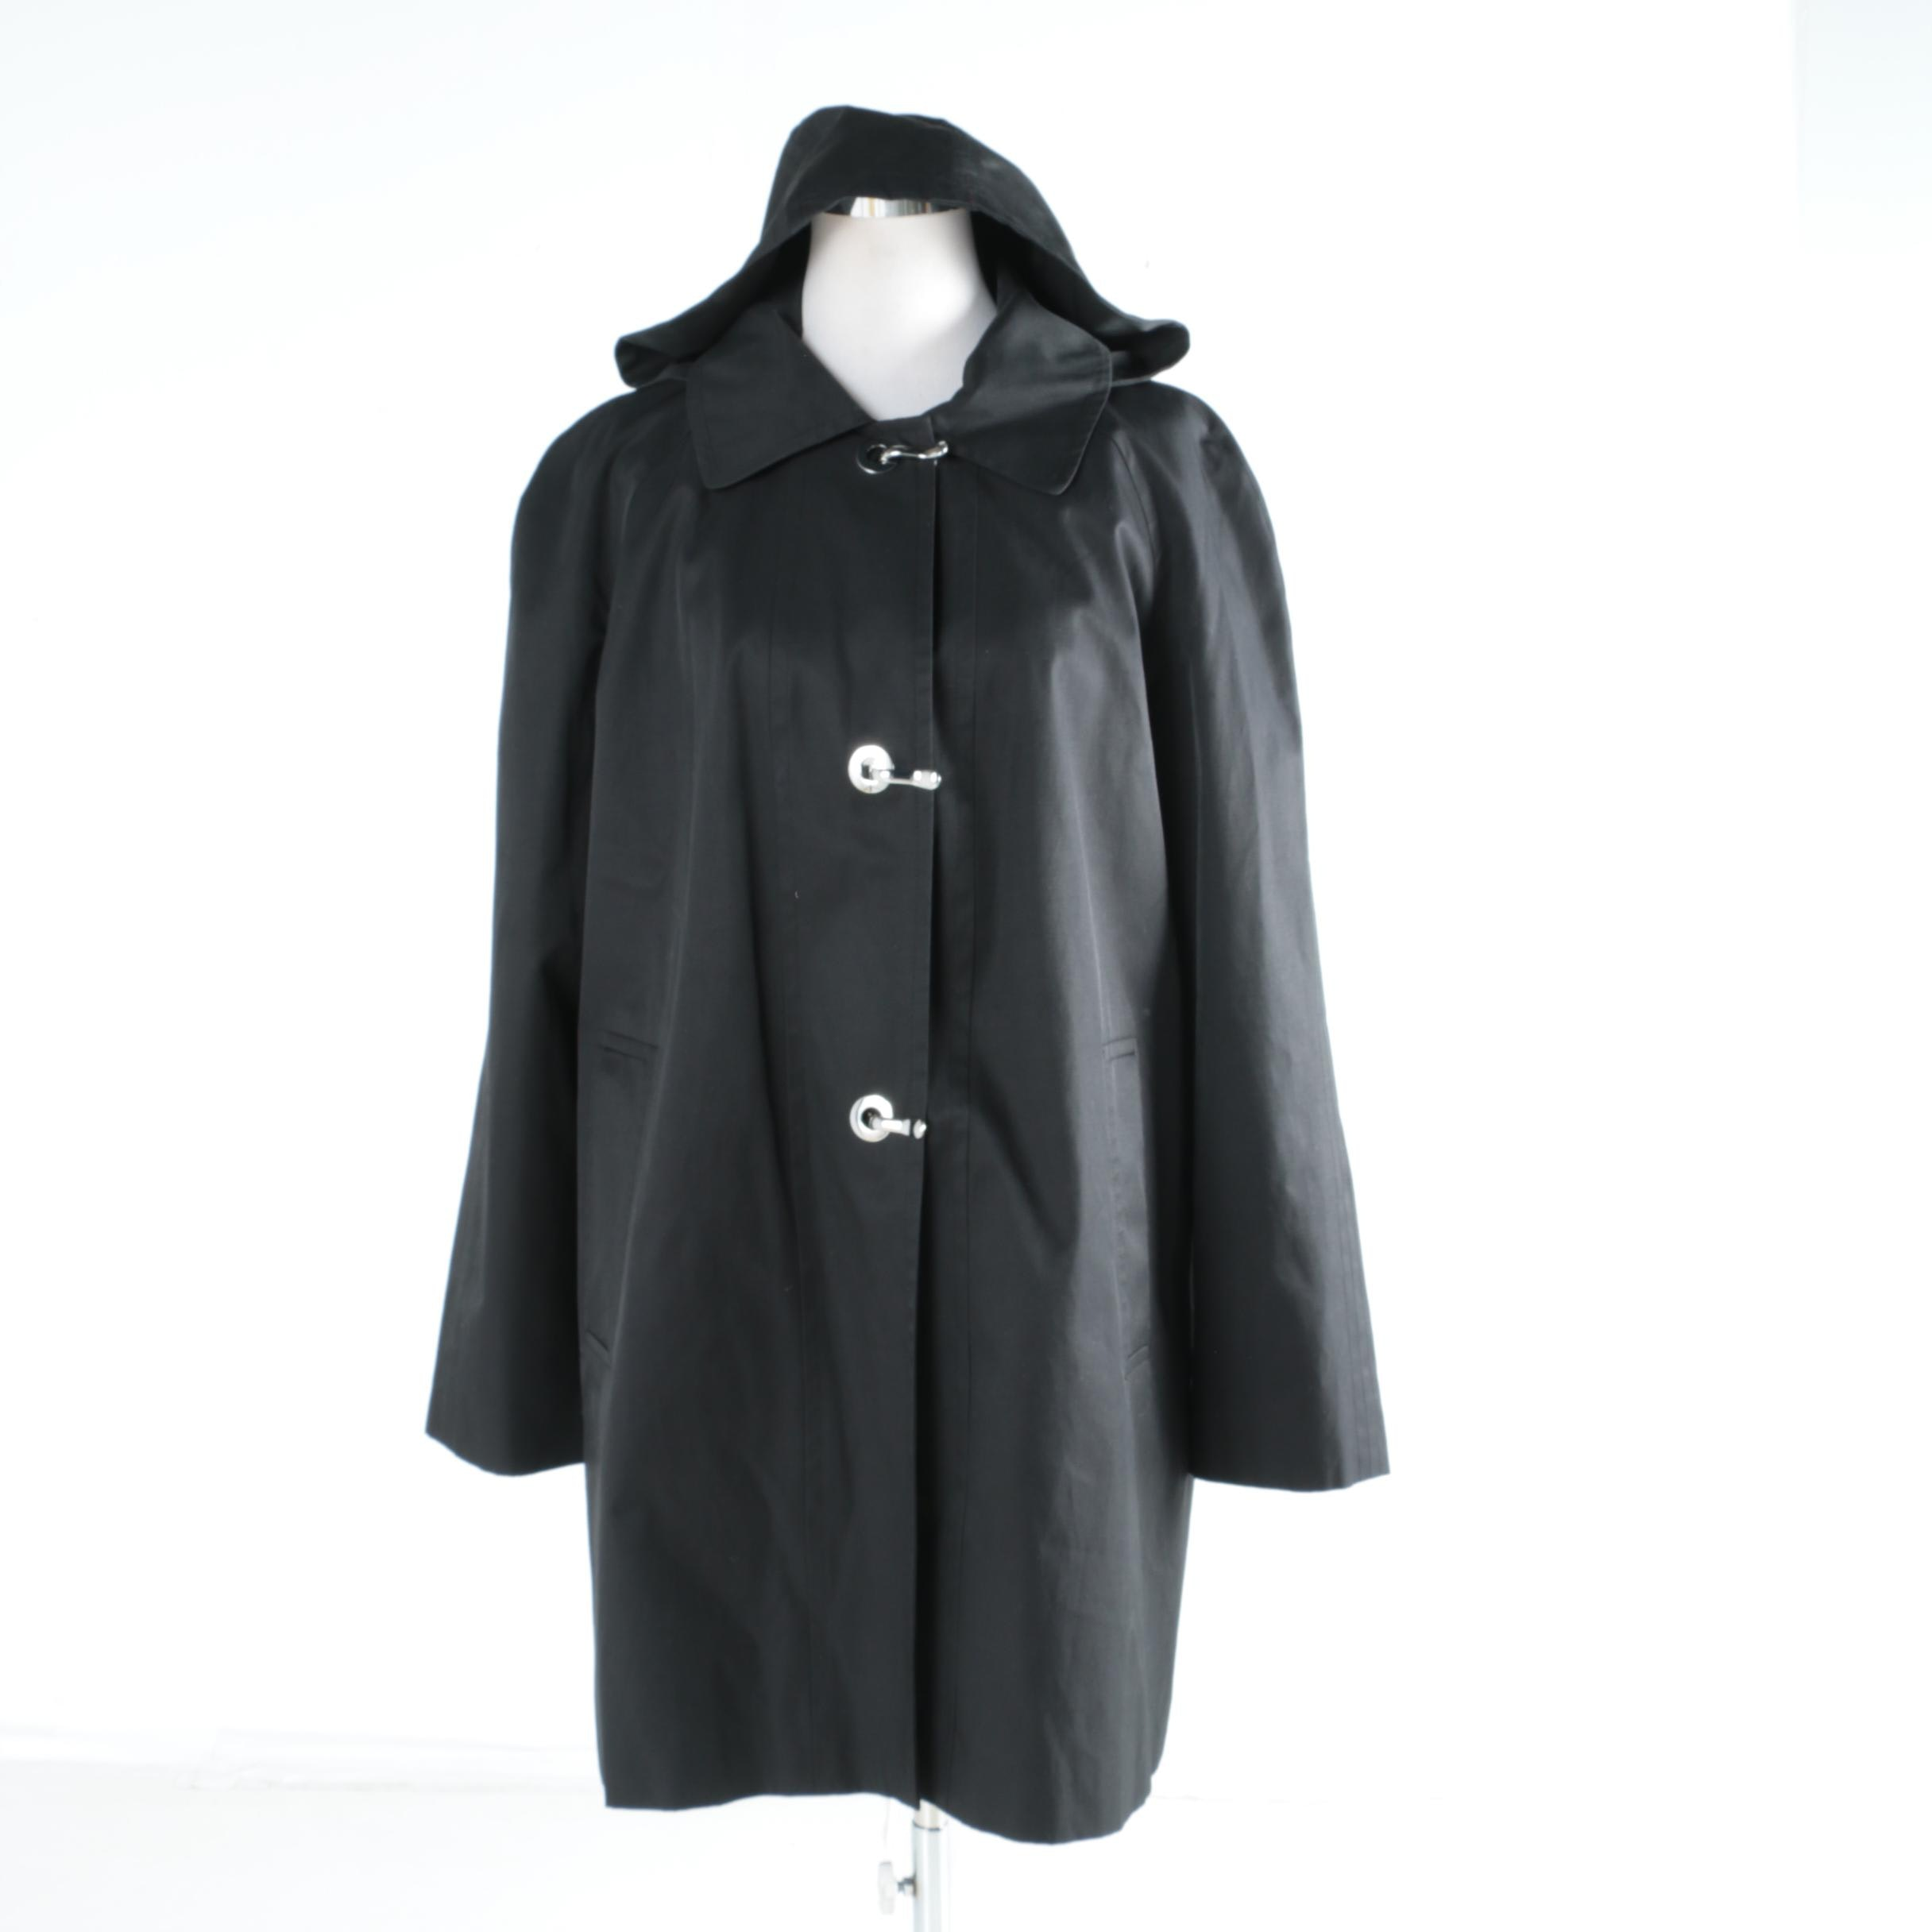 Women's London Fog Black Raincoat